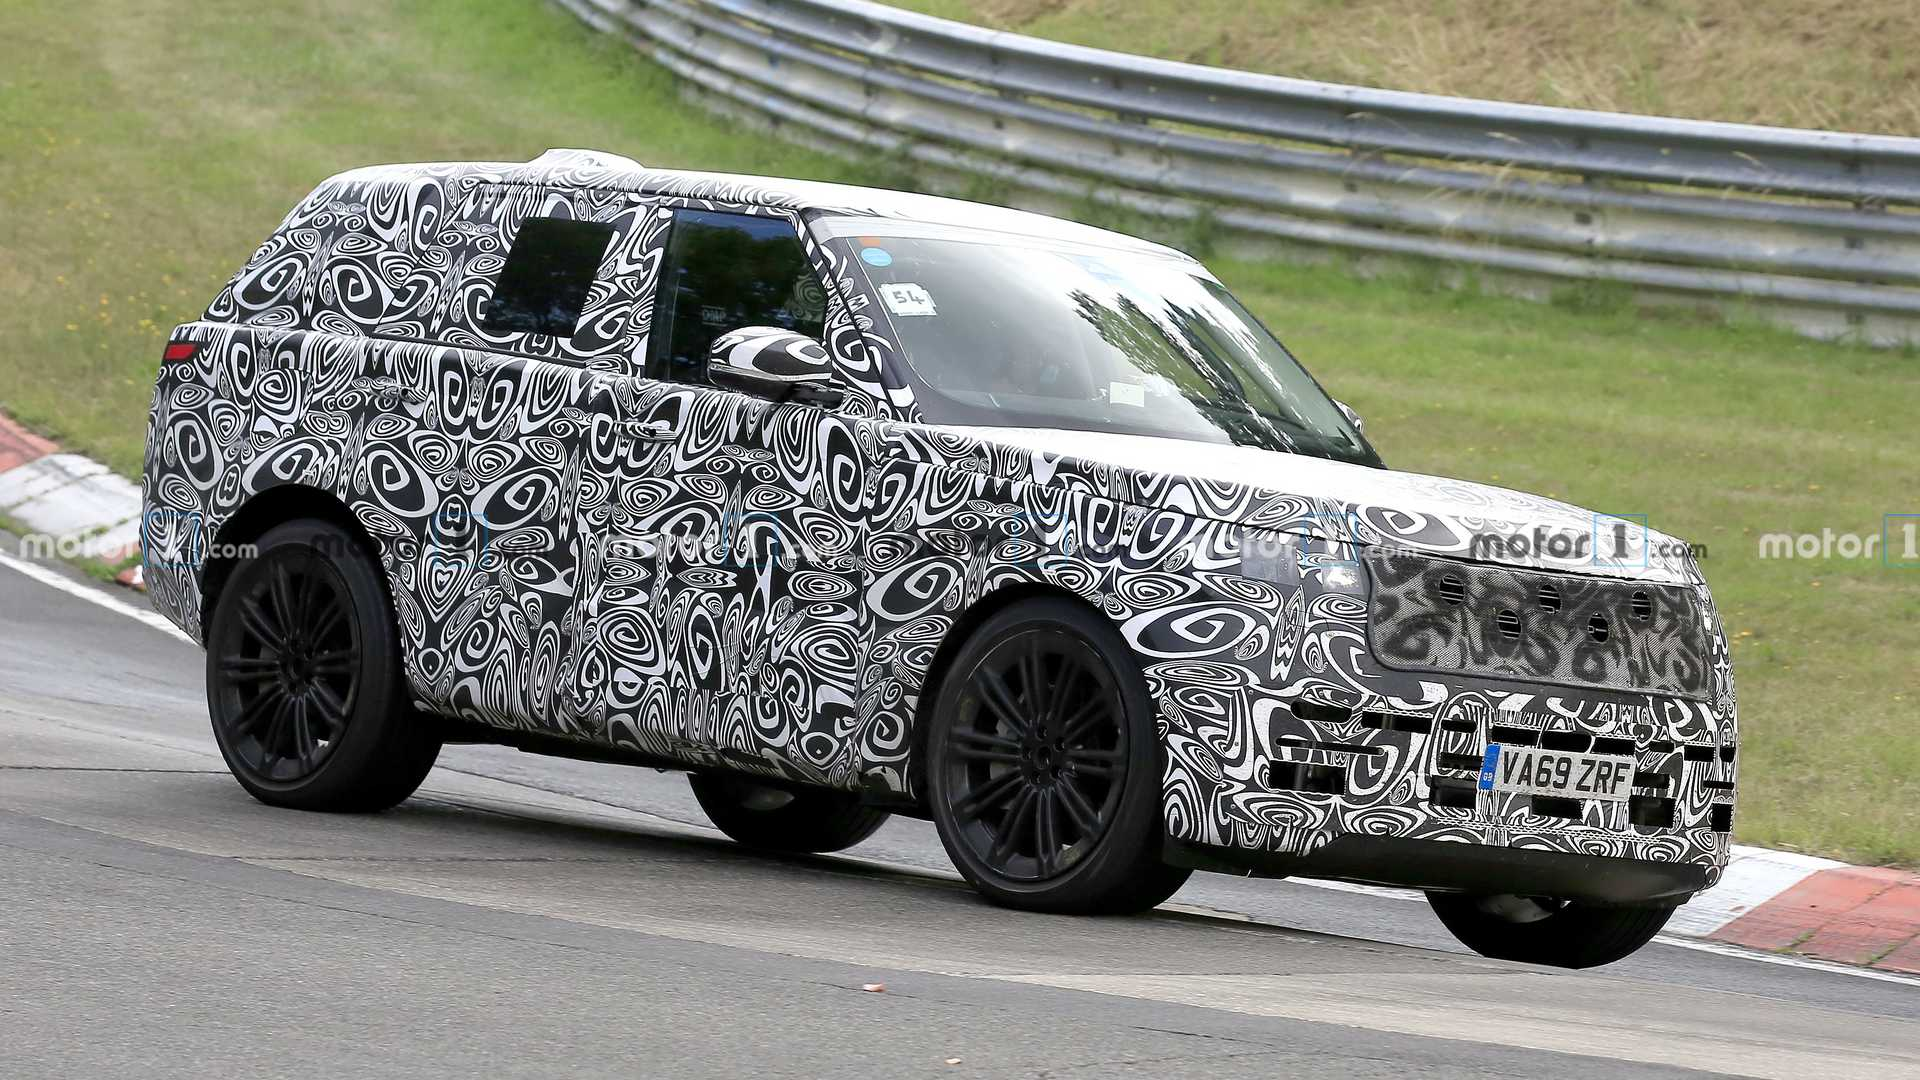 New Land Rover Range Rover spied testing with a rollcage